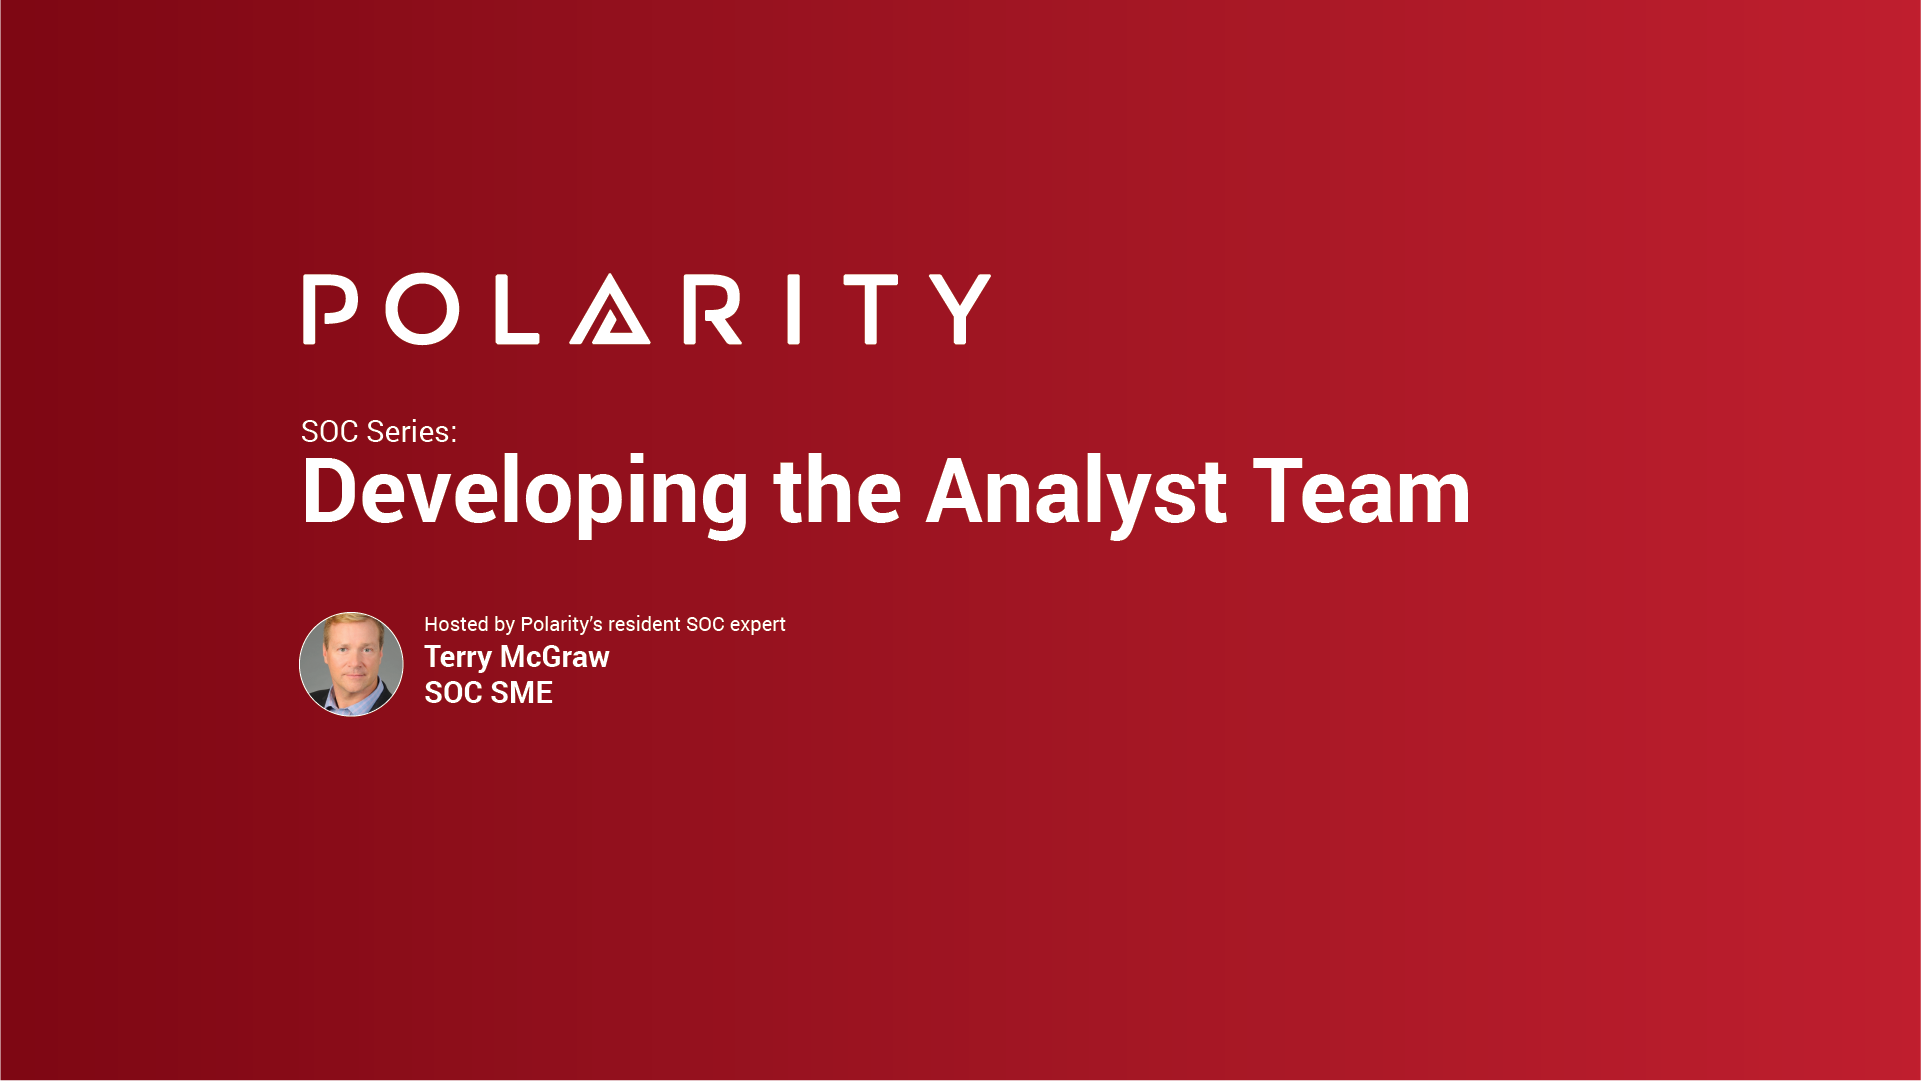 SOC Series: Developing the Analyst Team cover image